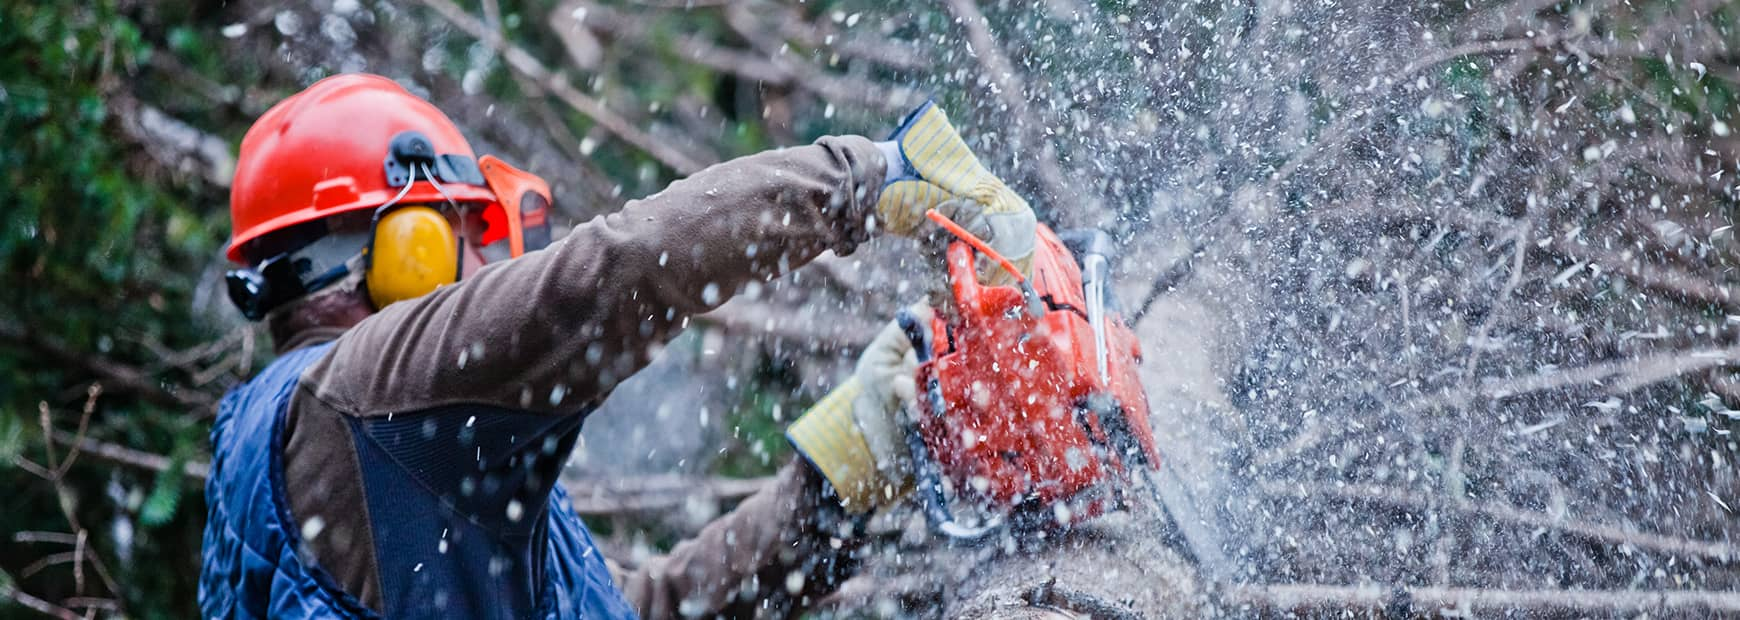 The Magnolia Tree Services LLC: Emergency tree removal in Stratford, Bridgeport and Milford